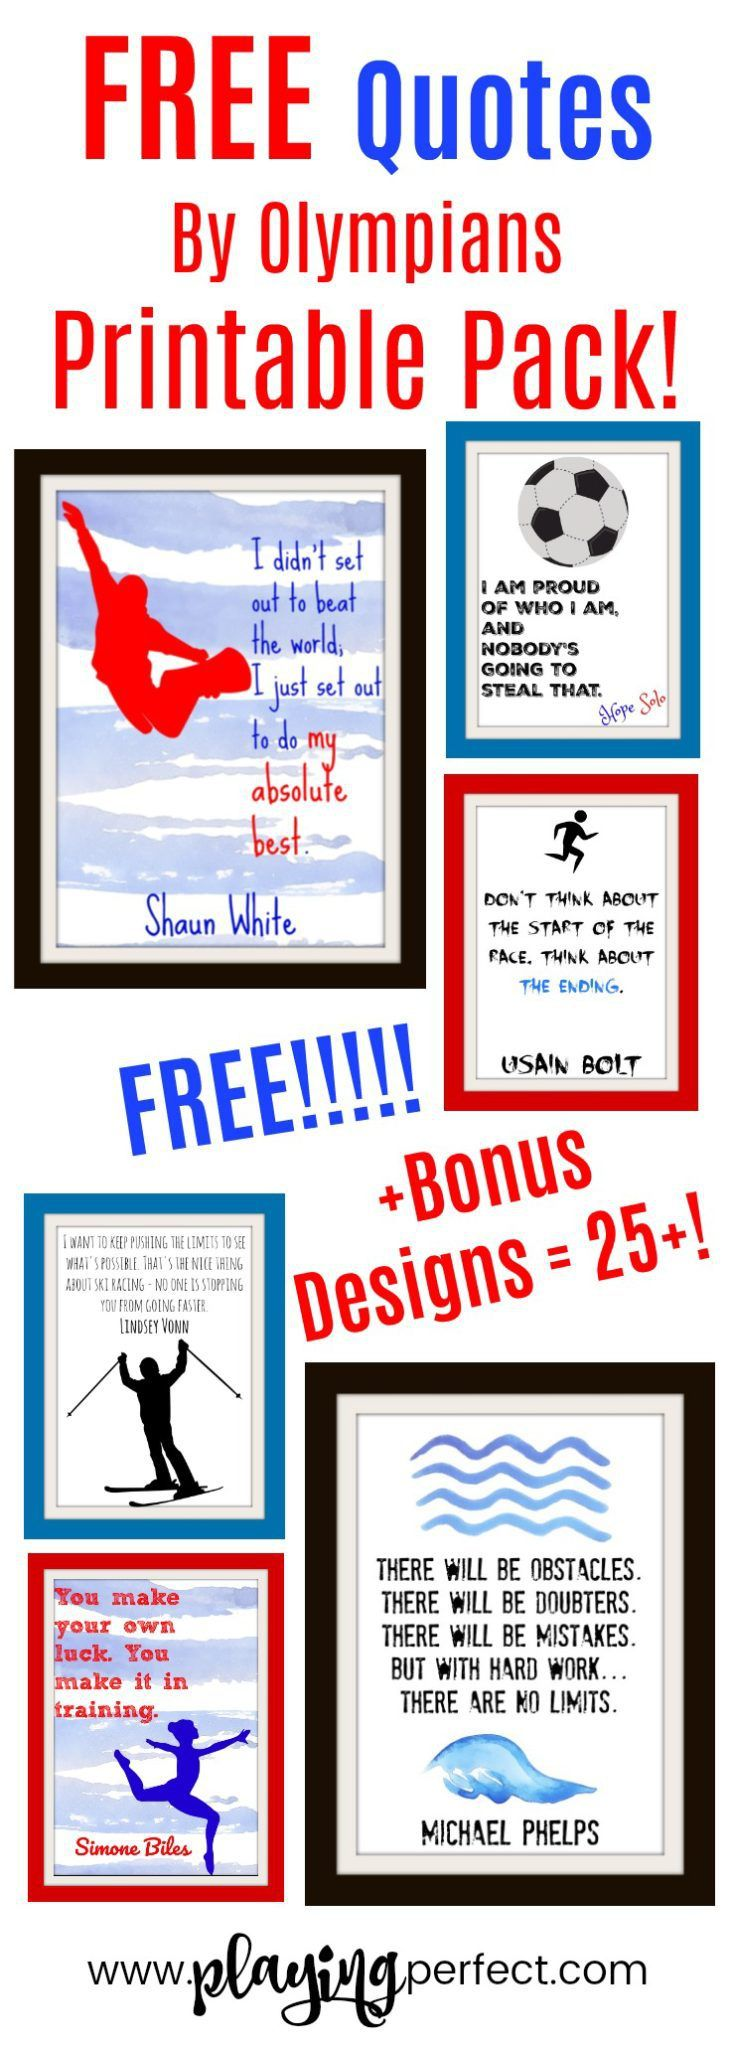 Free quotes by Olympians printables for The Olympics! Free wall art for your Olympic party and free home decorations for fans of The Olympic Games! Winter Olympics and Summer Olympics represented including Olympian quotes by Simone Biles, Michael Phelps, Shaun White, Lindsey Vonn, and Usain Bolt! You'll love these Olympic decorations! FREE Olympic printable pack! | playingperfect.com | #olympics #teamusa #playingperfect #winterolympics #olympicgames #freeprintables #quotes #sports #olympians